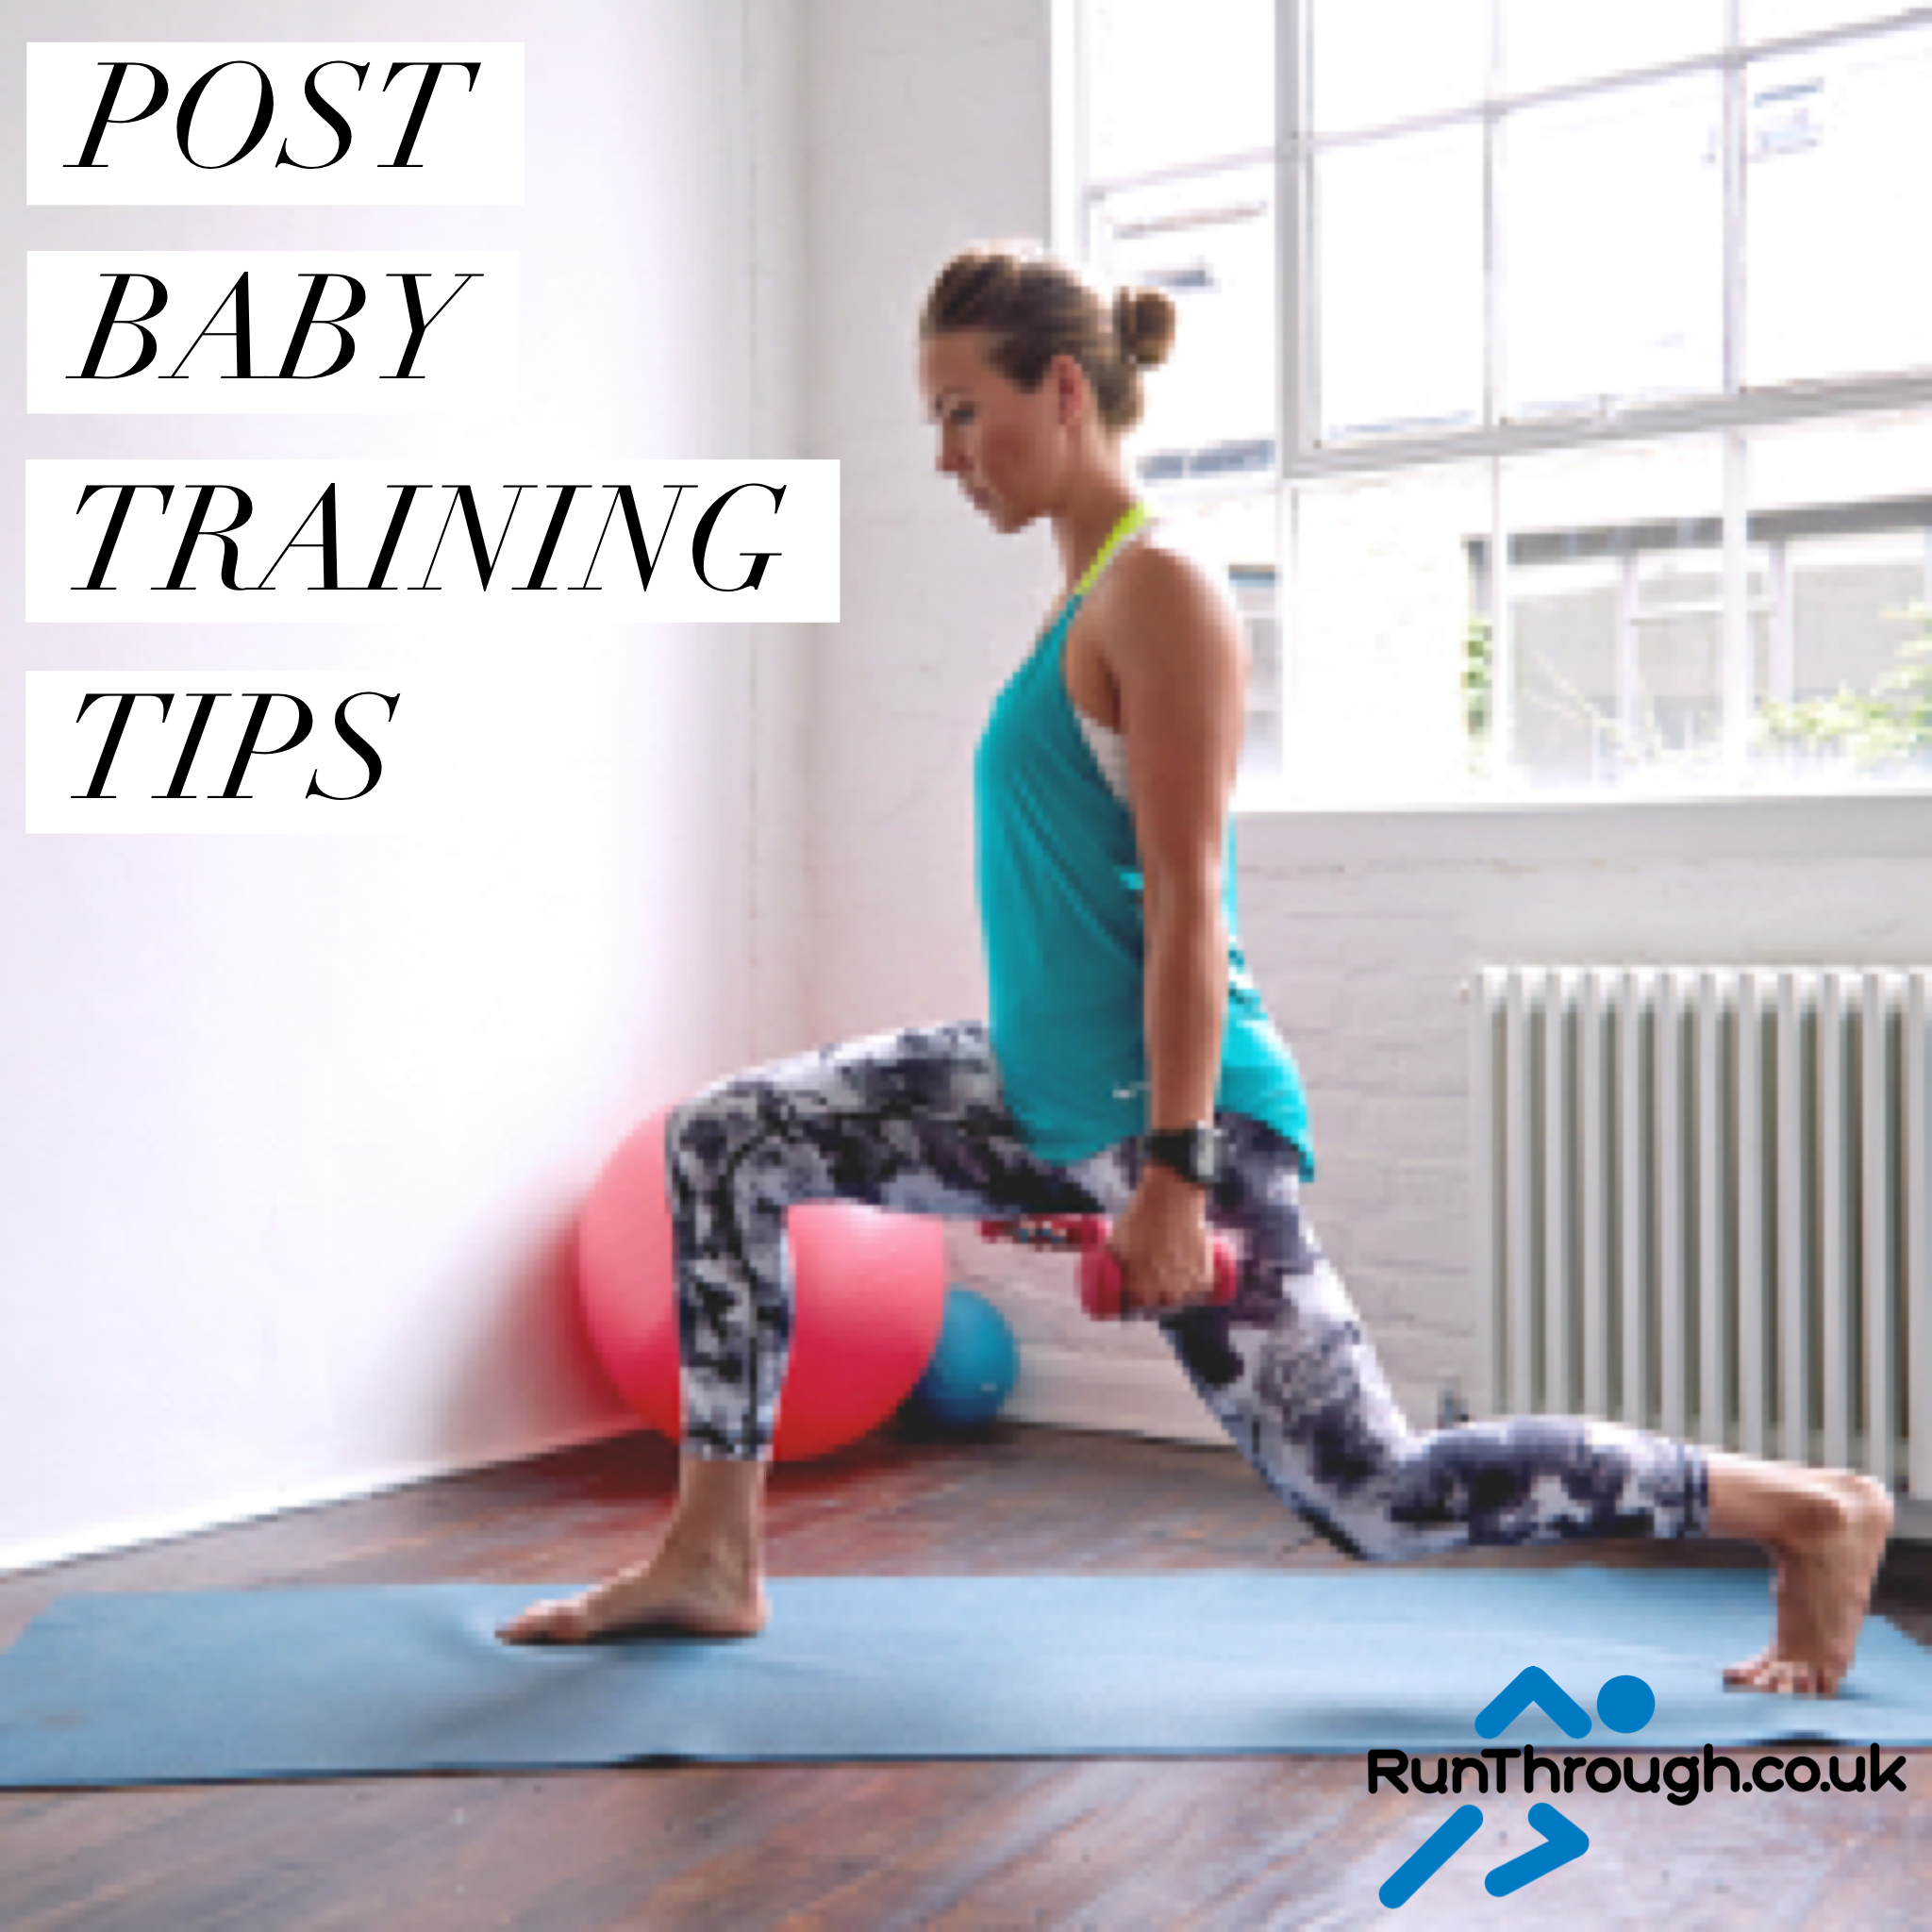 Post Baby Training Tips